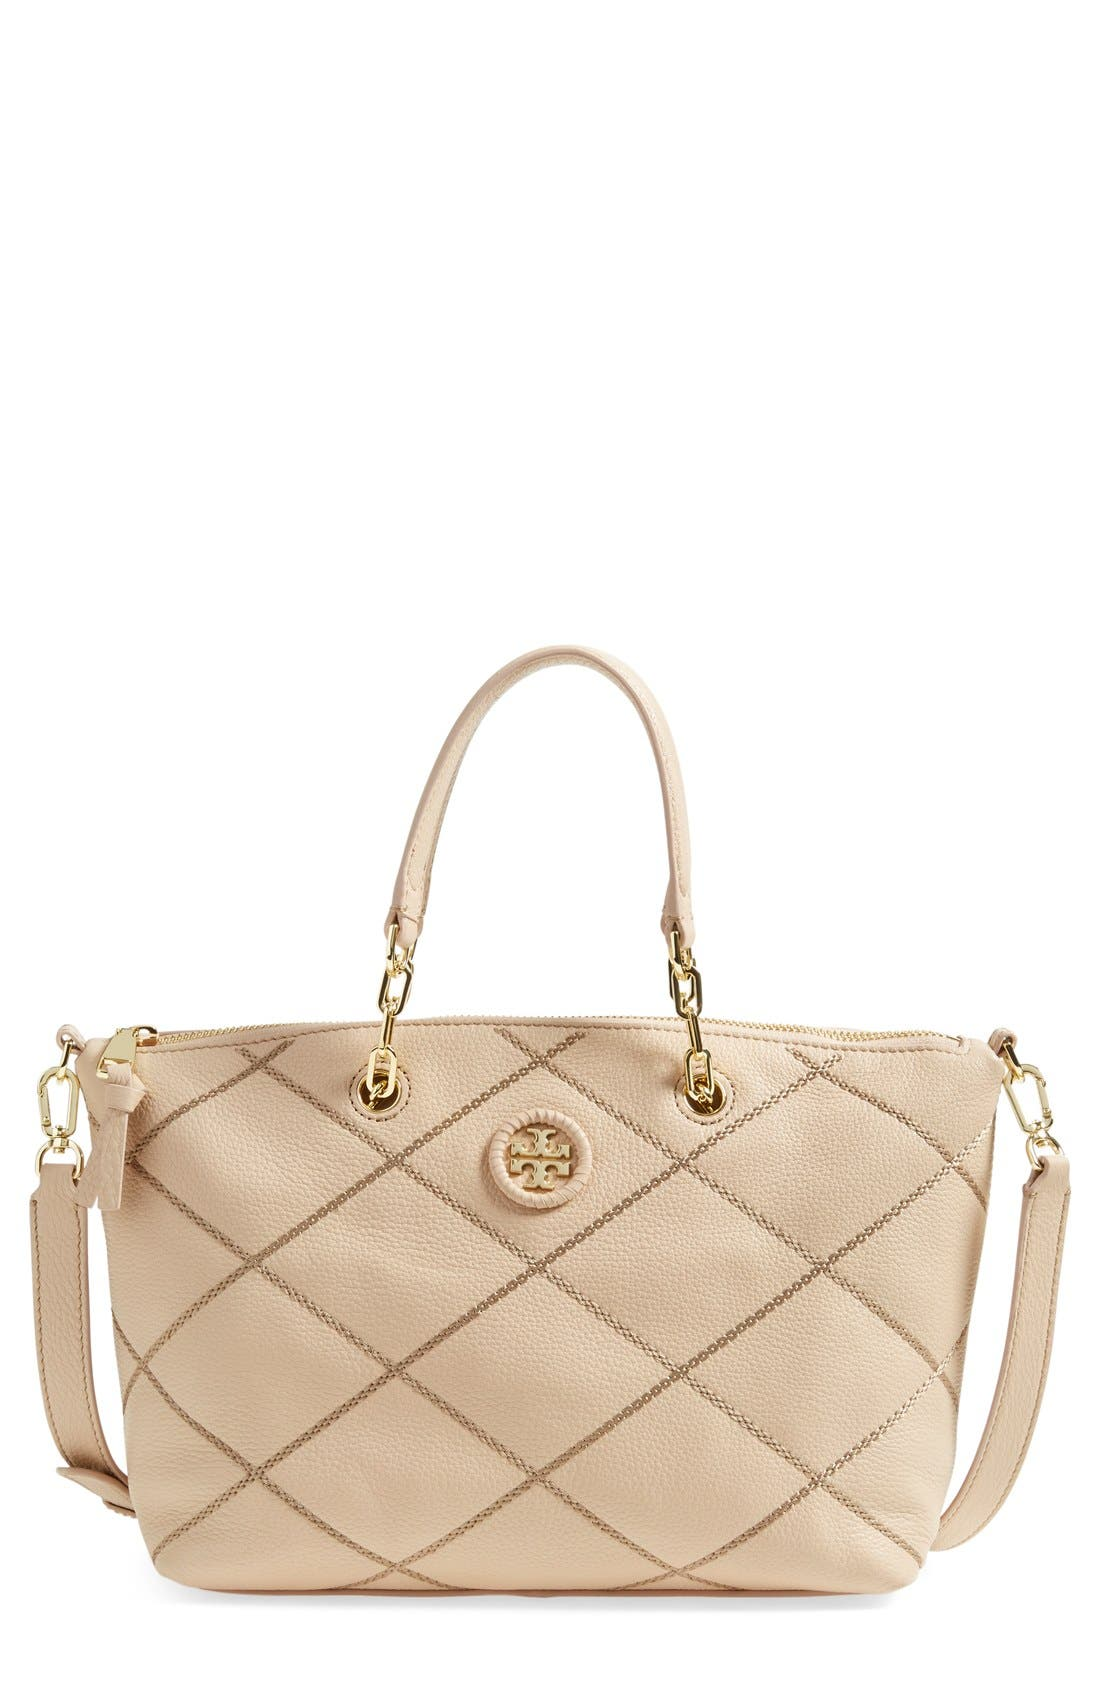 Main Image - Tory Burch 'Small Stitch' Leather Satchel (Nordstrom Exclusive)